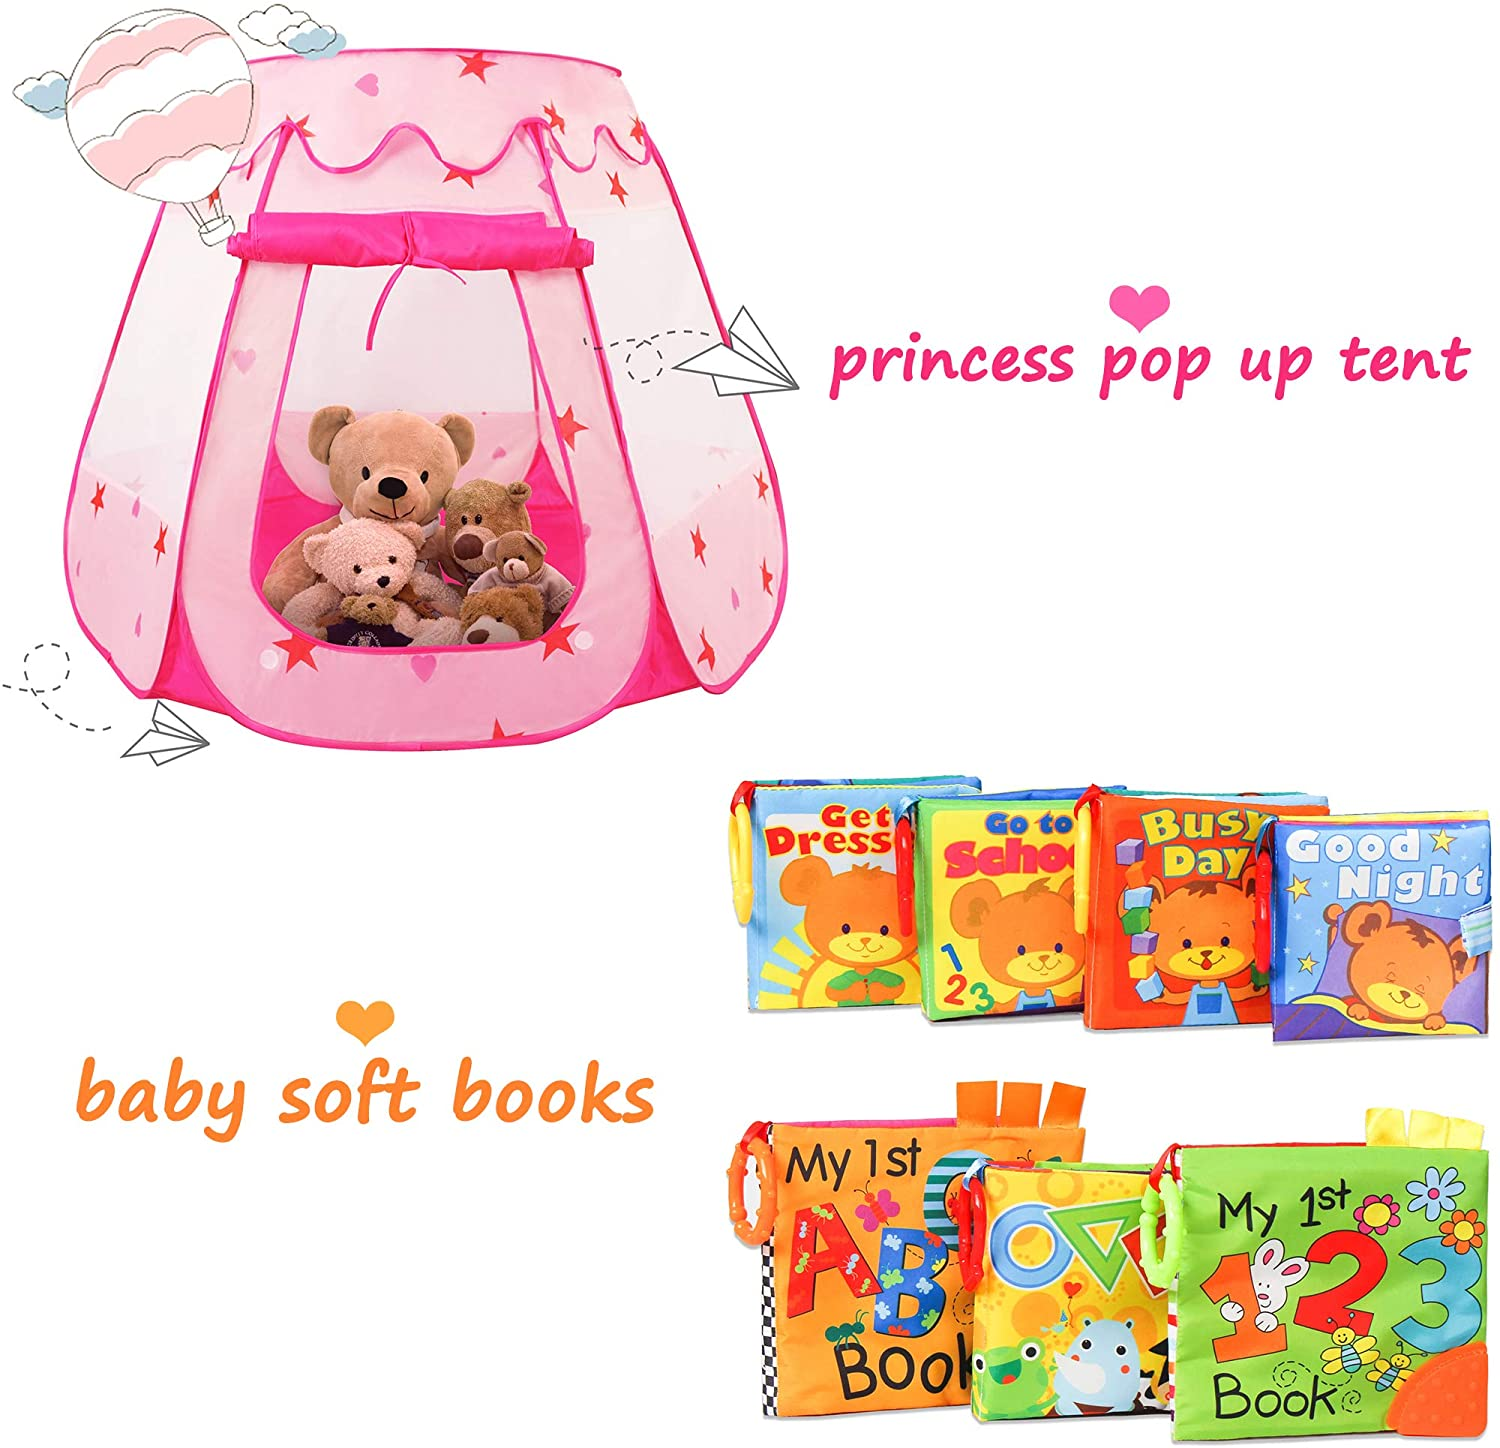 KIDAMI Princess Pop Up Tent & Baby Soft Books, Indoor Outdoor Play and Learning Numbers and Alphabets and Telling Stories, Gift Set for Toddler, Infant and Baby